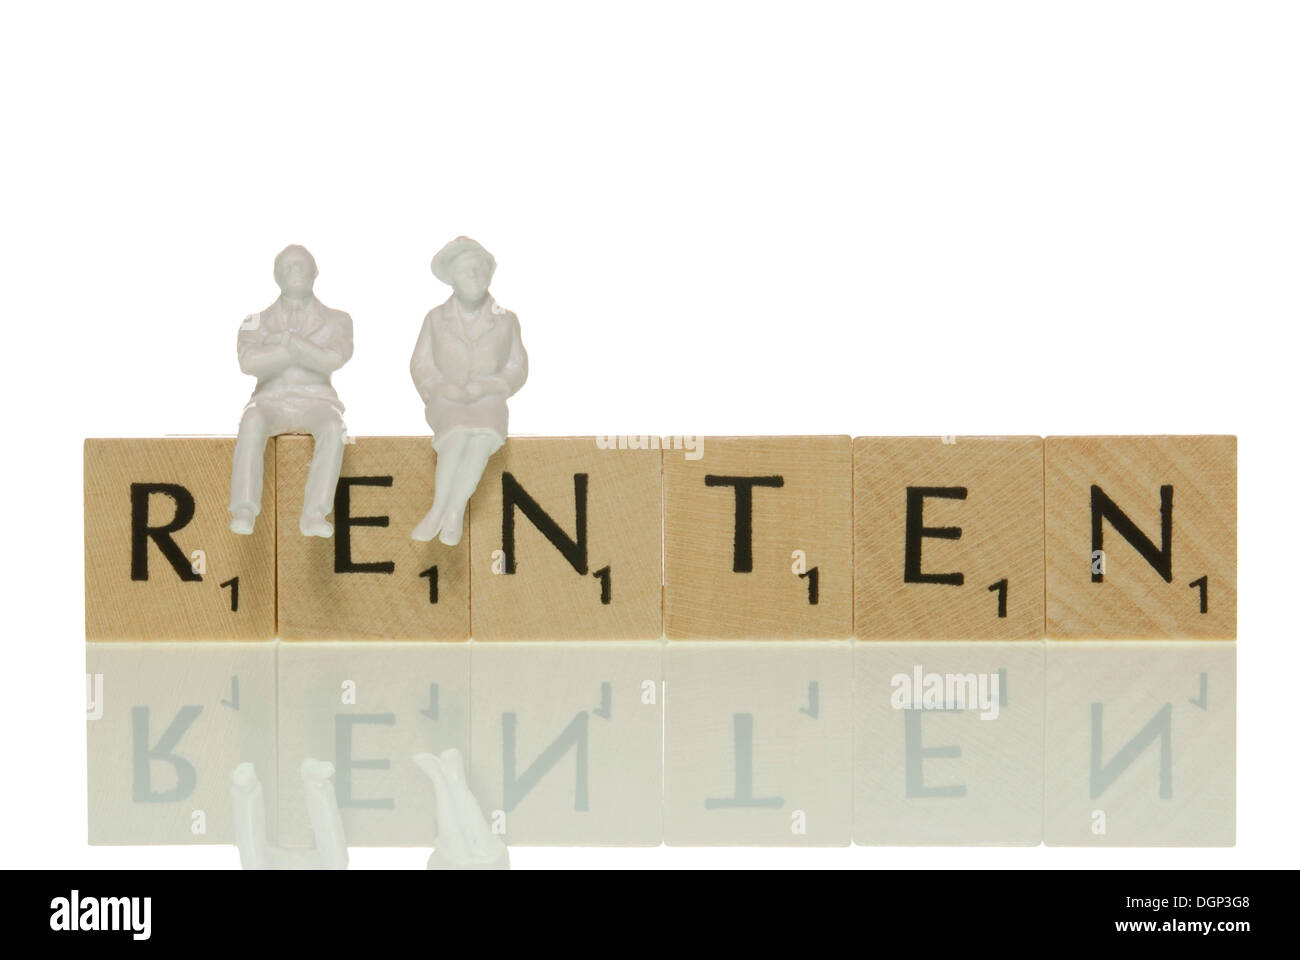 Two figures sitting, waiting on letter tiles forming the word 'Renten', German for 'old-age pension' - Stock Image